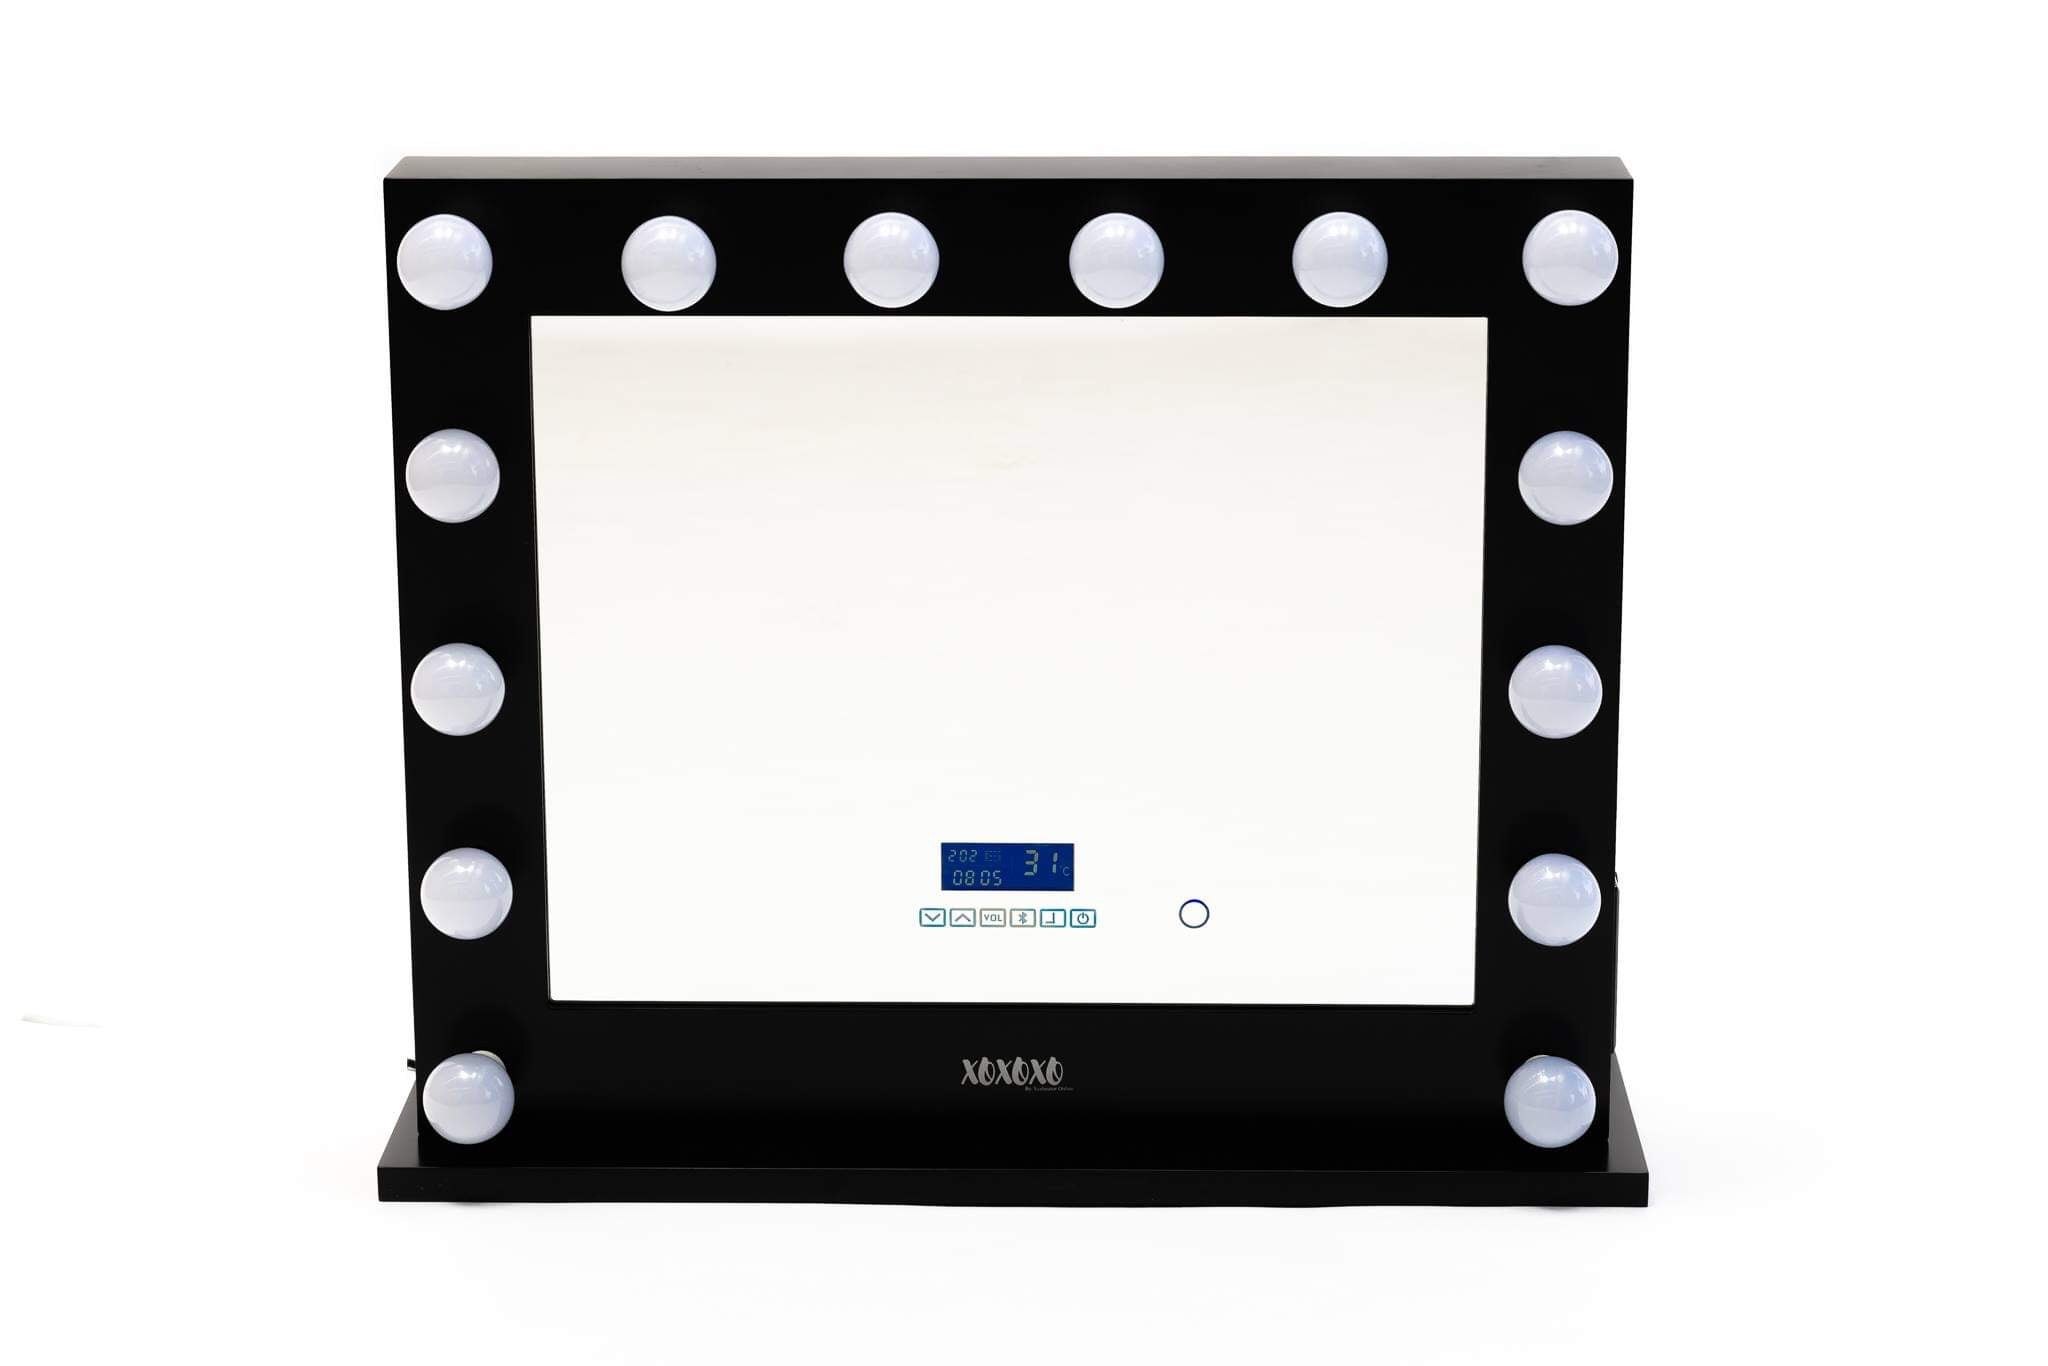 Hollywood Mirror Extra Large Black with Bluetooth Speakers, Sensor Dimmer,USB,Power Points